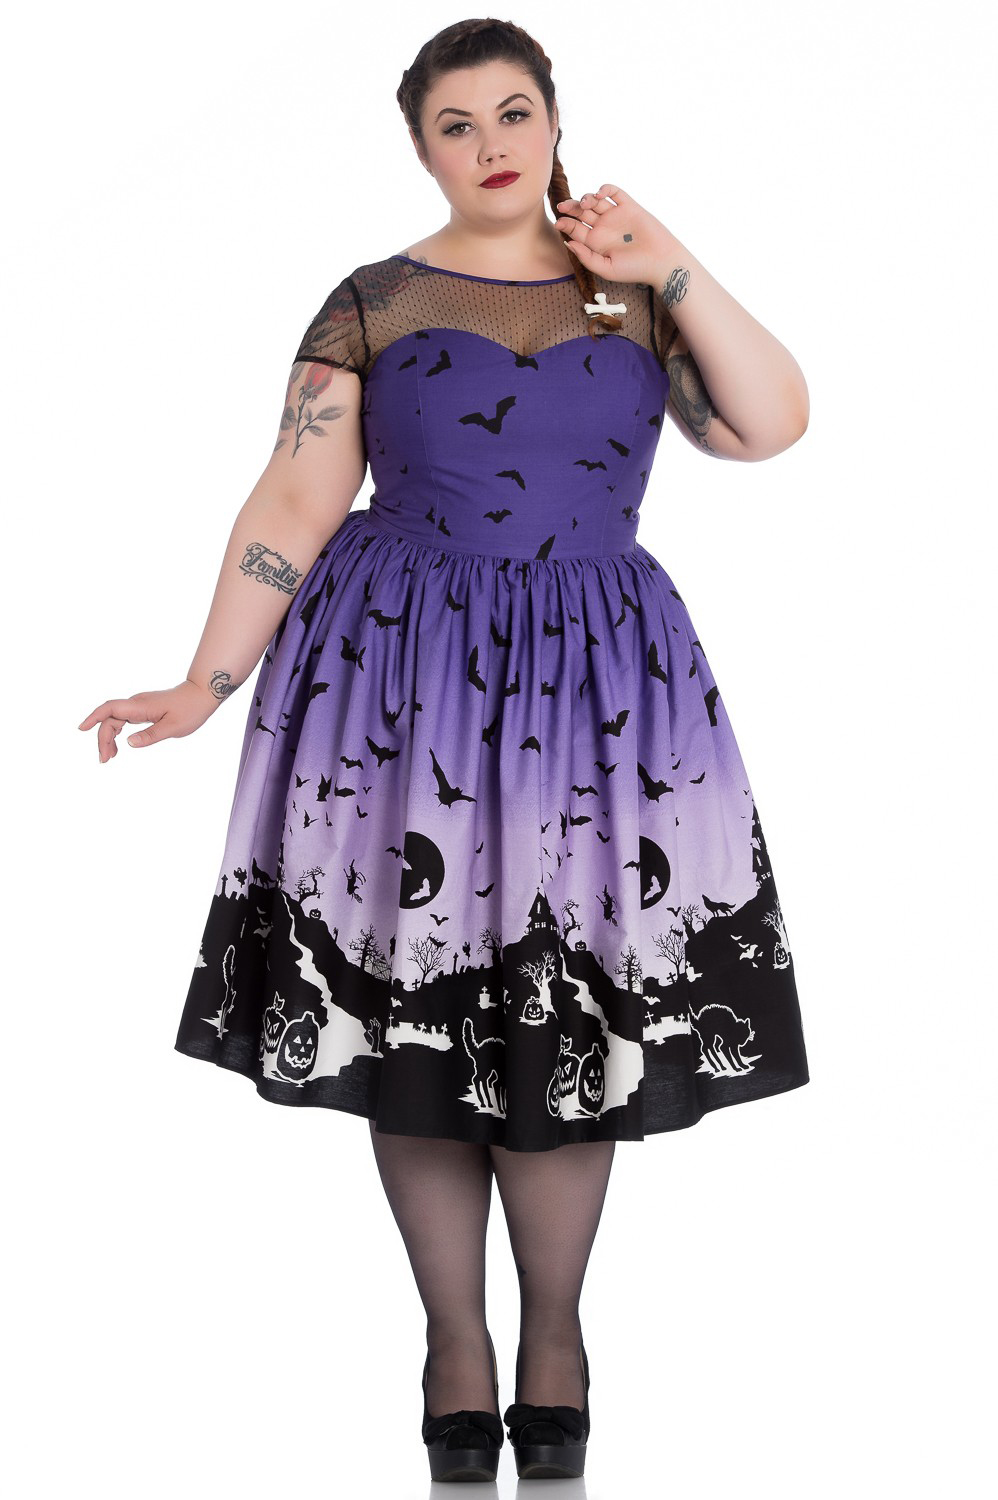 Haunt 50's Halloween Plus Sized Dress by Hell Bunny - SALE